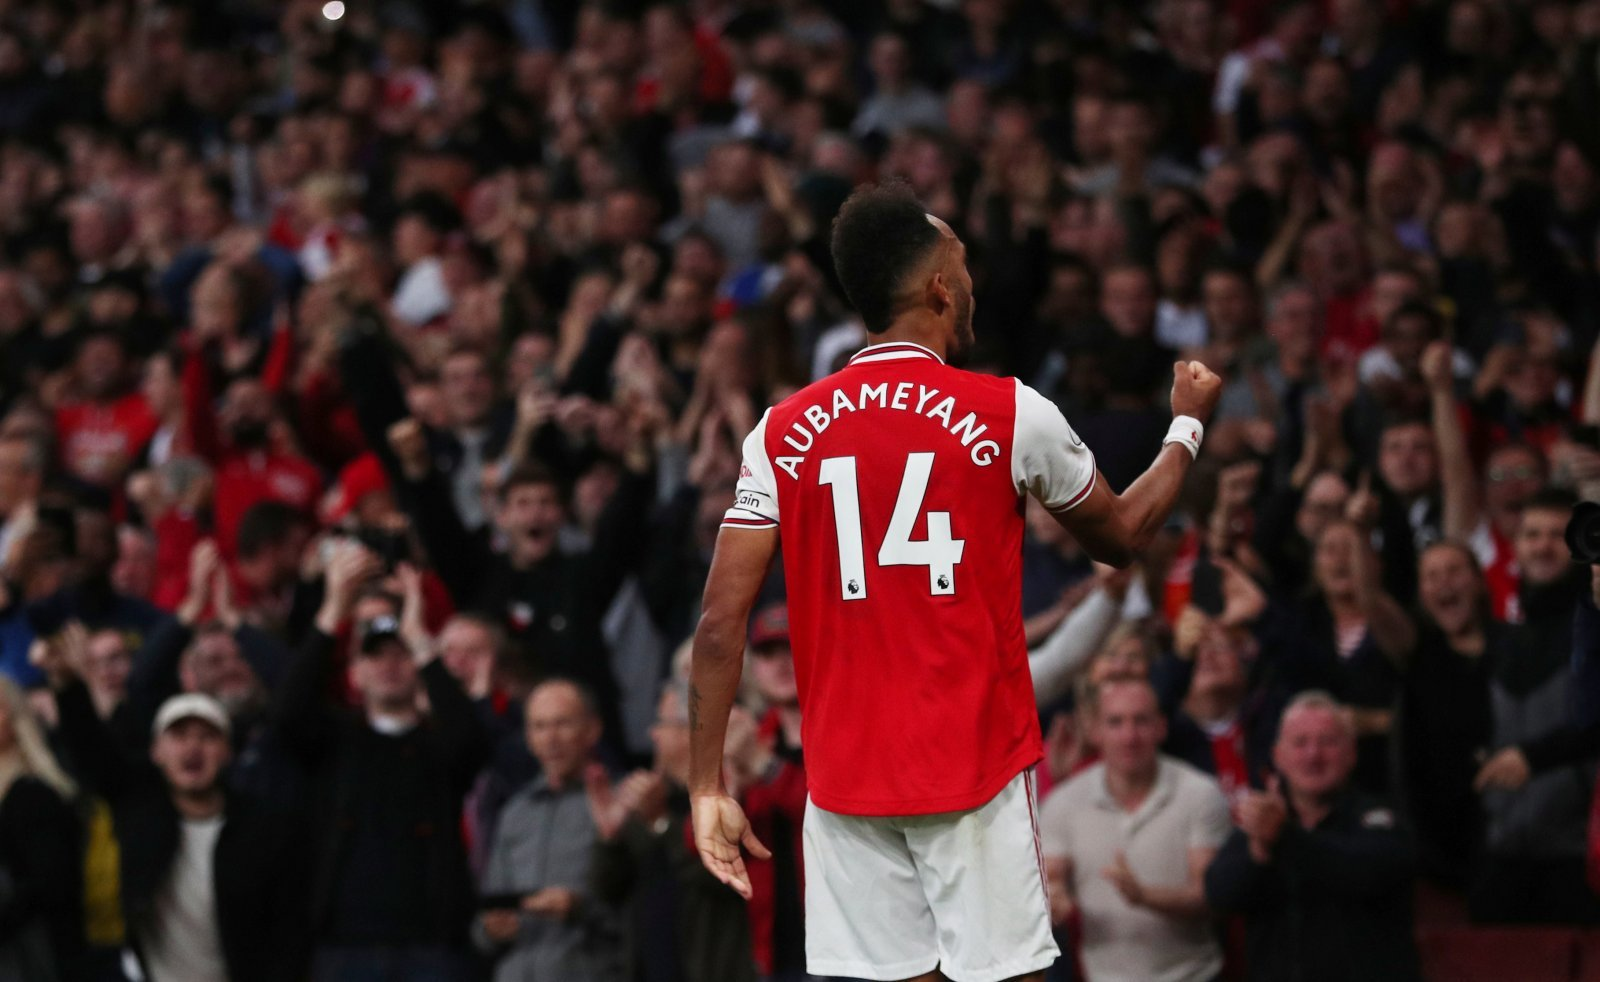 Arsenal: Fans respond to Aubameyang's impressive record